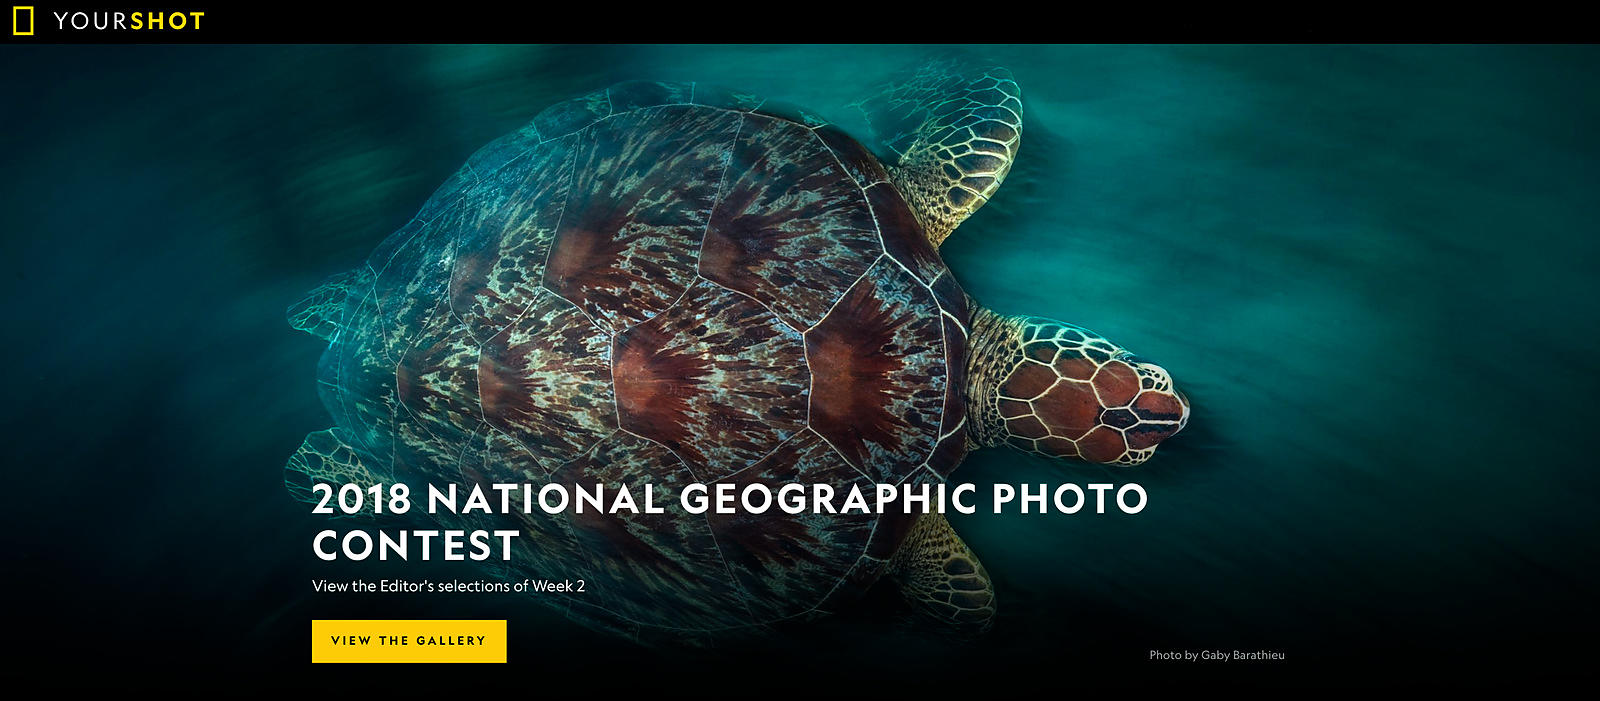 2018 National Geographic Photo contest